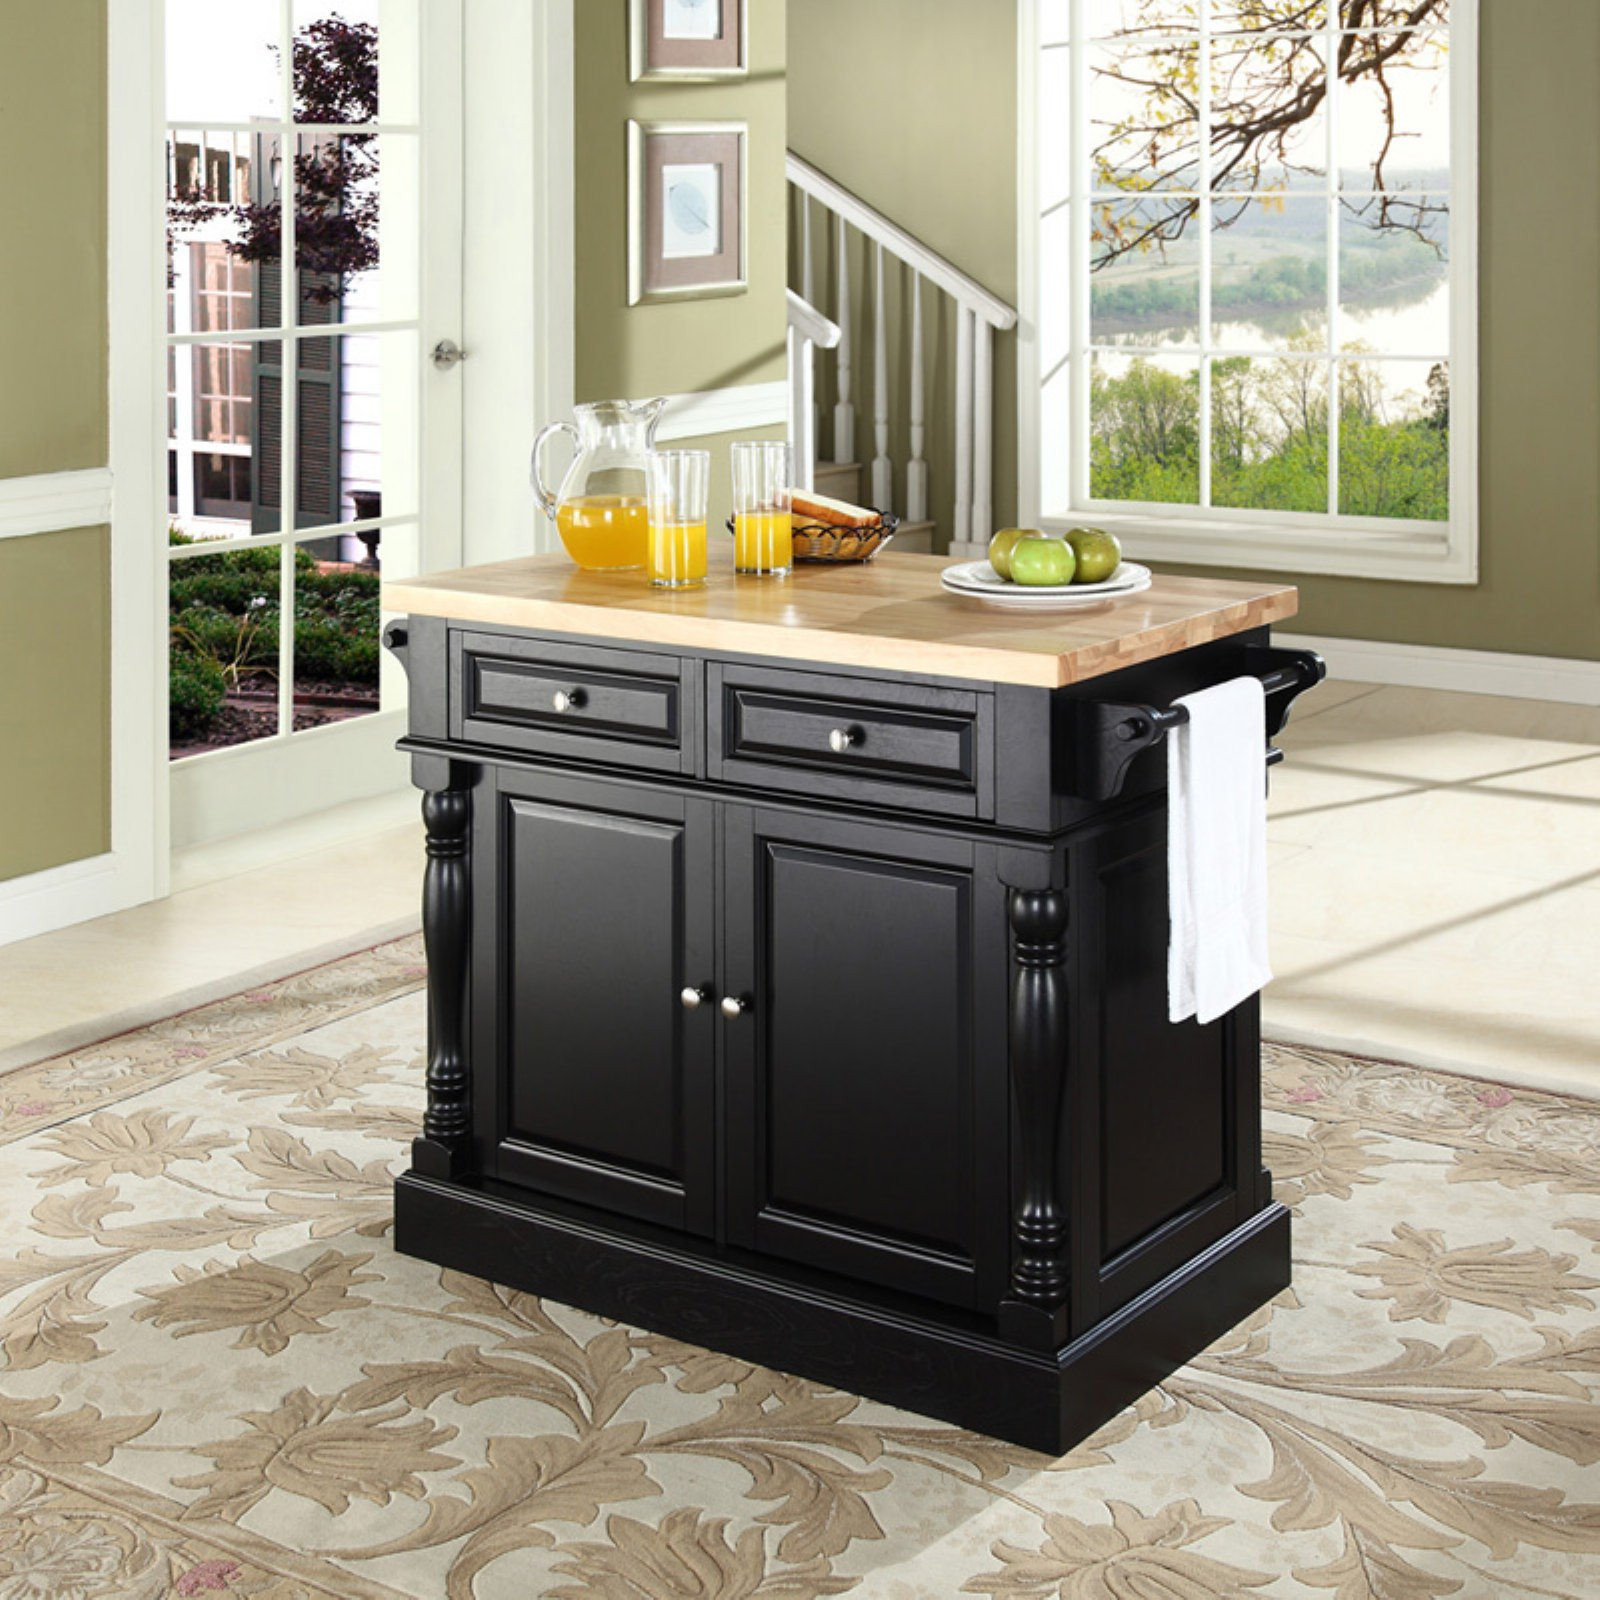 crosley kitchen island free standing sink unit furniture butcher block top walmart com